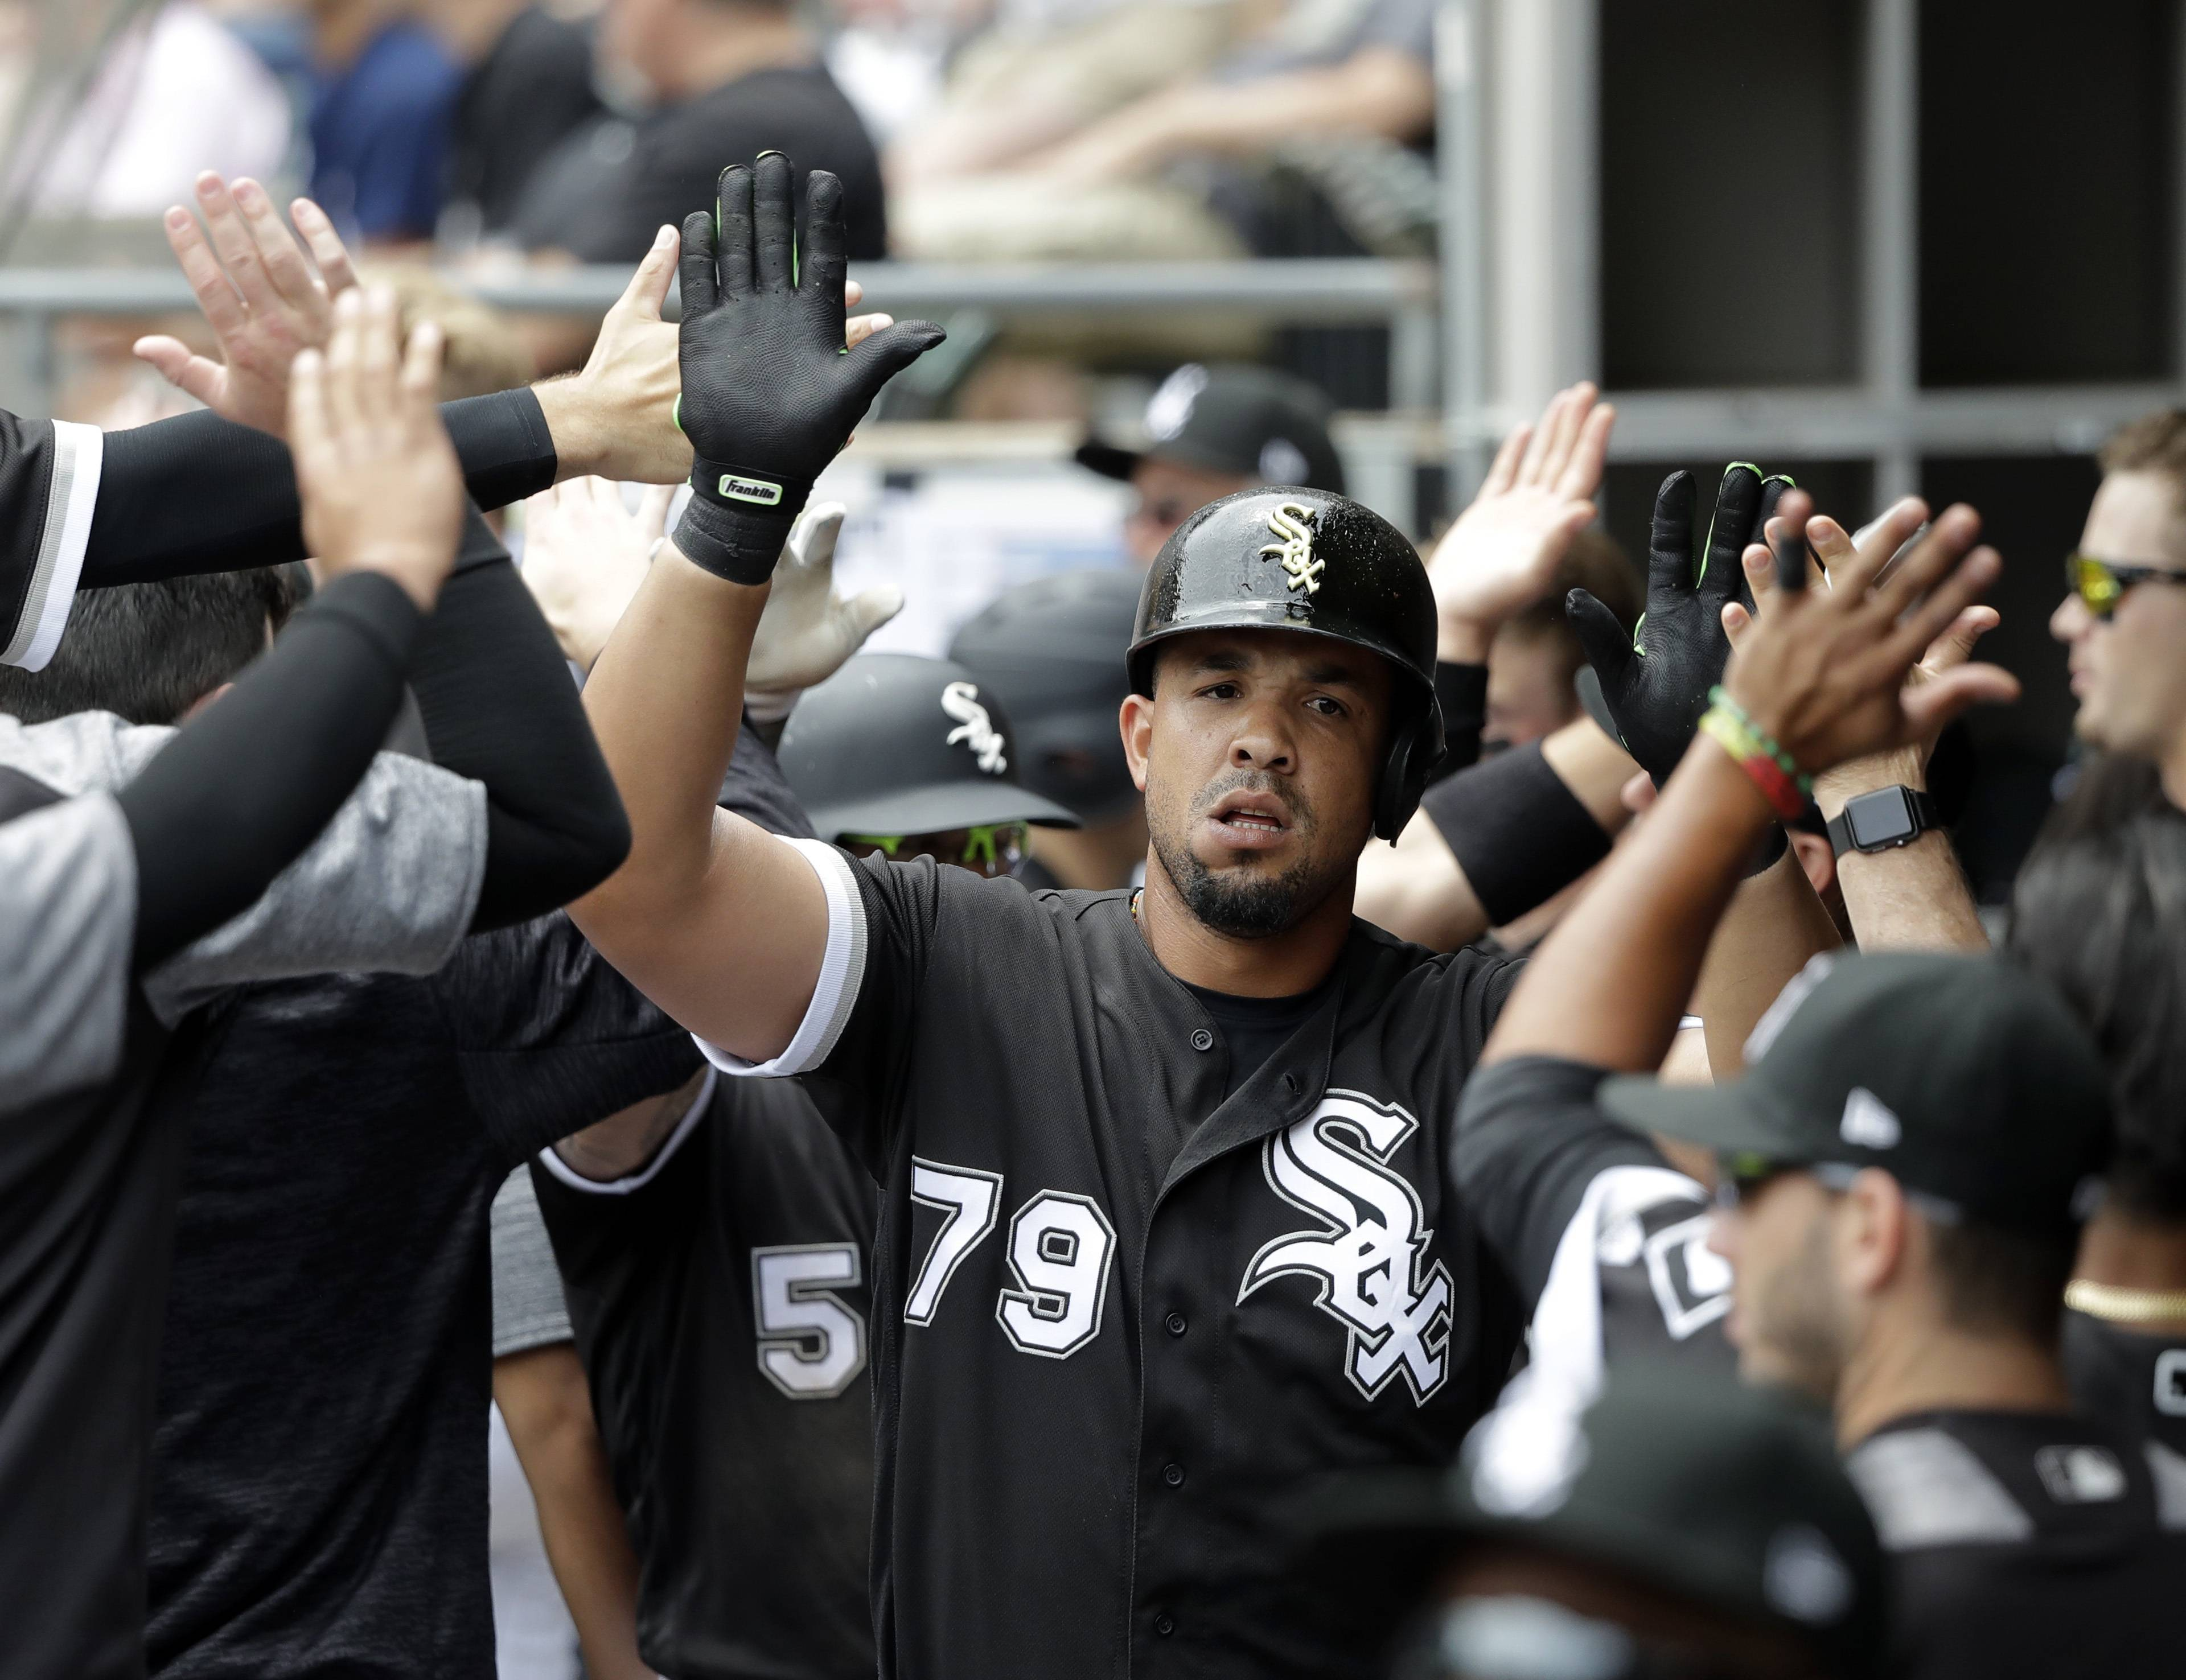 Chicago White Sox's Jose Abreu (79) celebrates in the dugout his two-run home run off Cleveland Indians starting pitcher Mike Clevinger during the first inning of a baseball game Thursday, June 14, 2018, in Chicago. Yolmer Sanchez also scored.